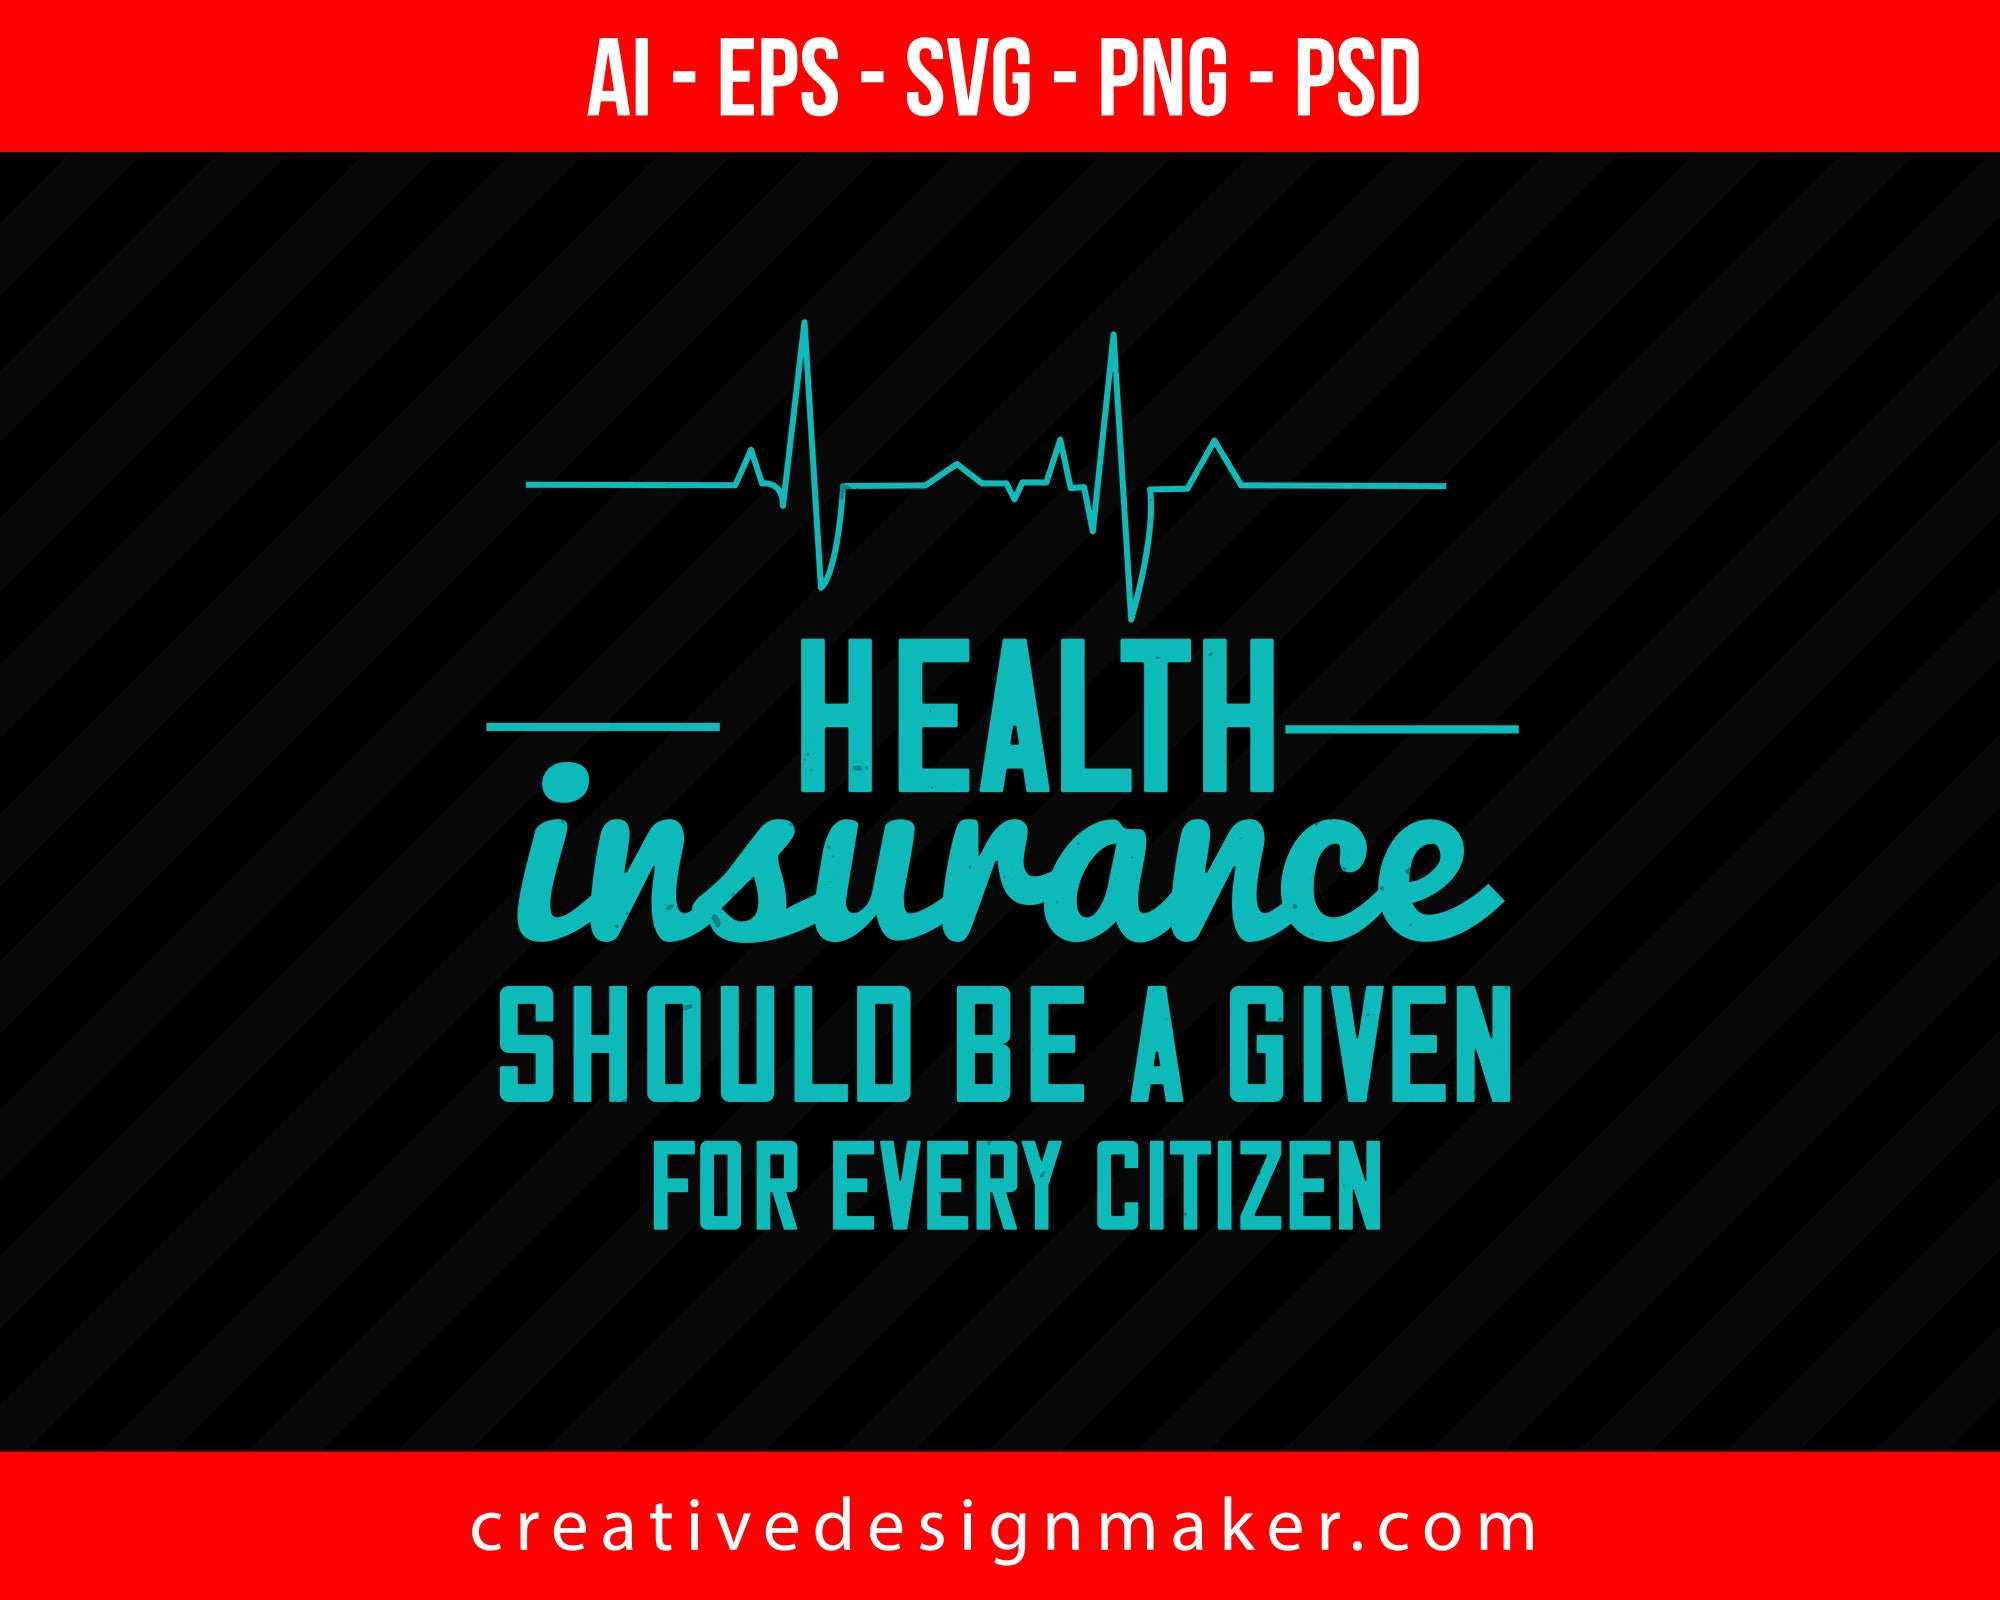 Health Insurance Should Be A Given For Every Citizen World Health Print Ready Editable T-Shirt SVG Design!